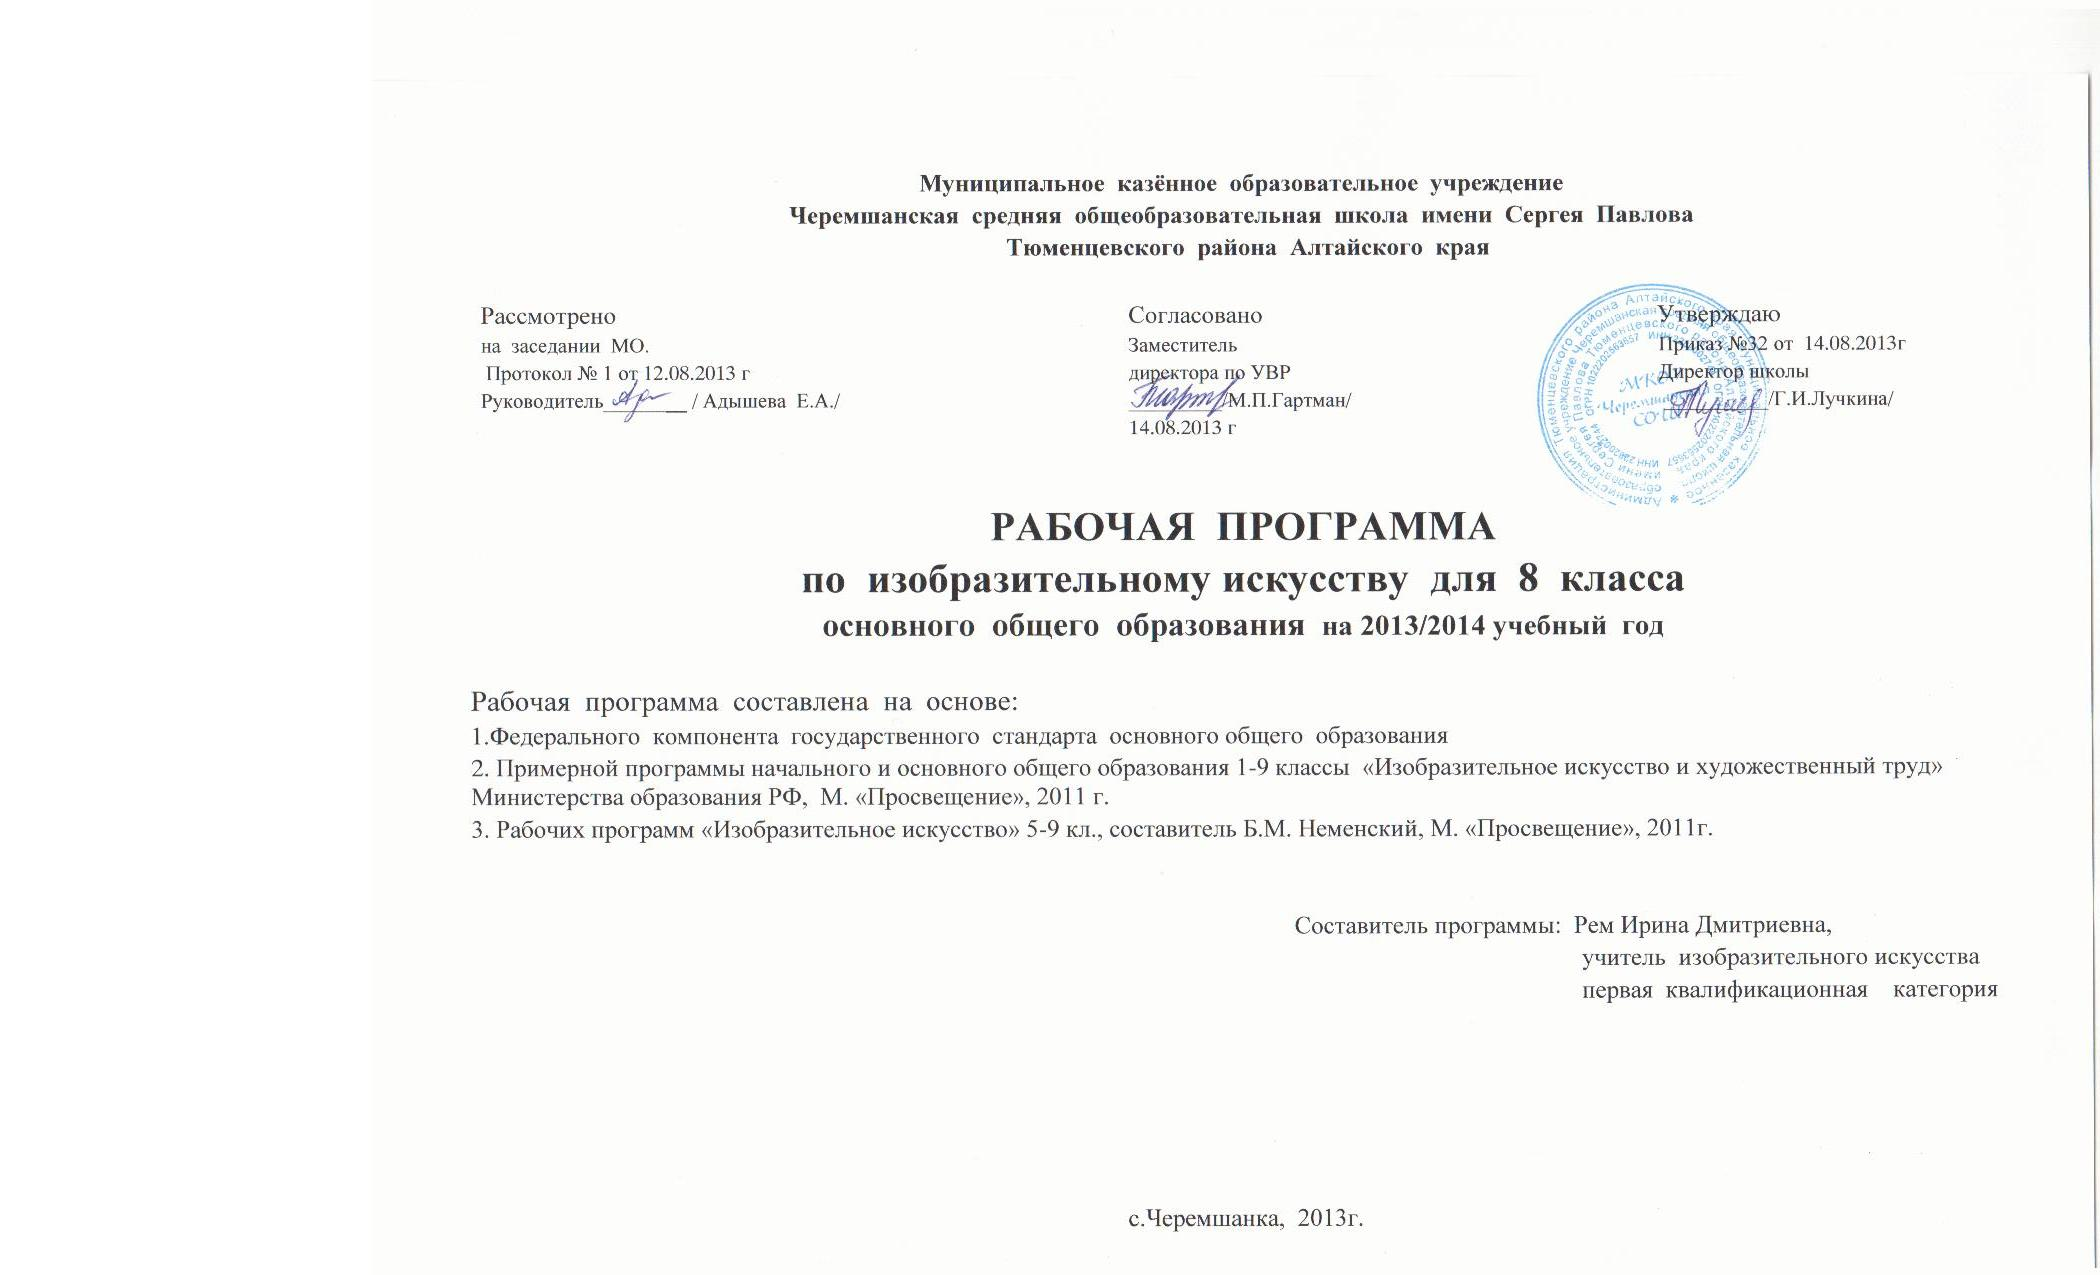 C:\Documents and Settings\User4\Local Settings\Temporary Internet Files\Content.Word\сканы история 8 010.jpg